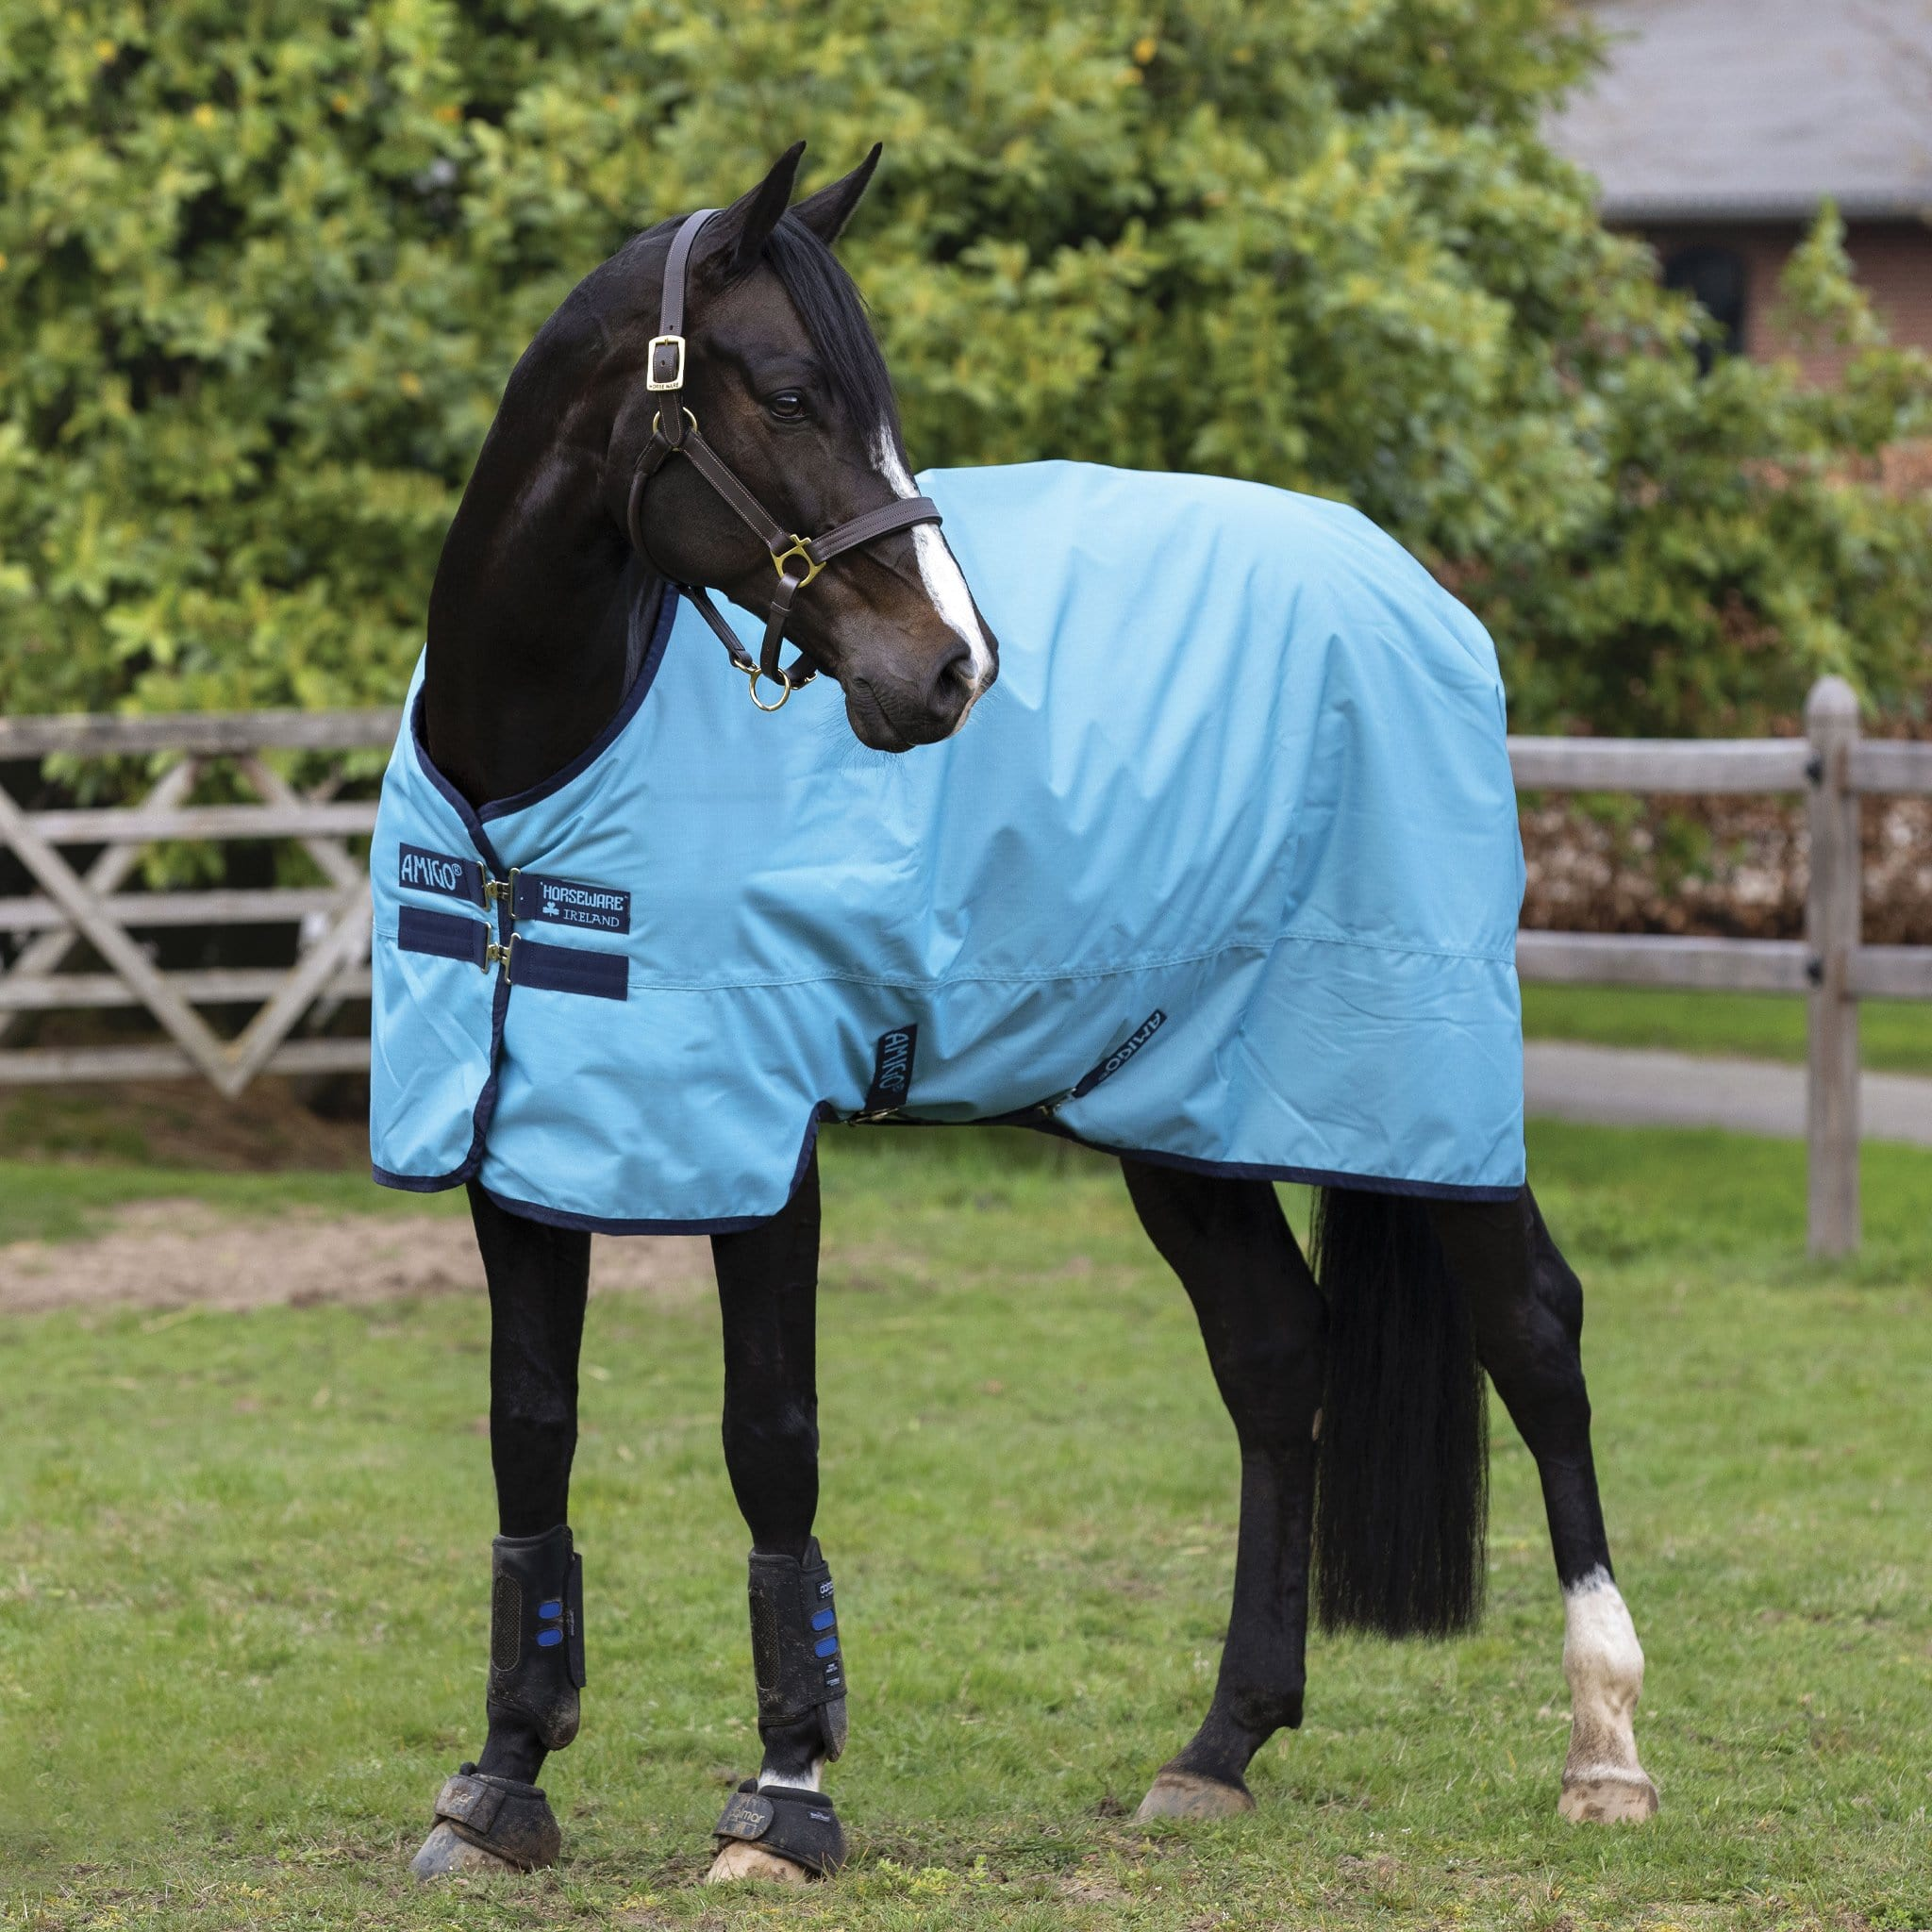 Amigo Hero Ripstop Lightweight 50g Standard Turnout Rug Light Blue and Navy AAPA91